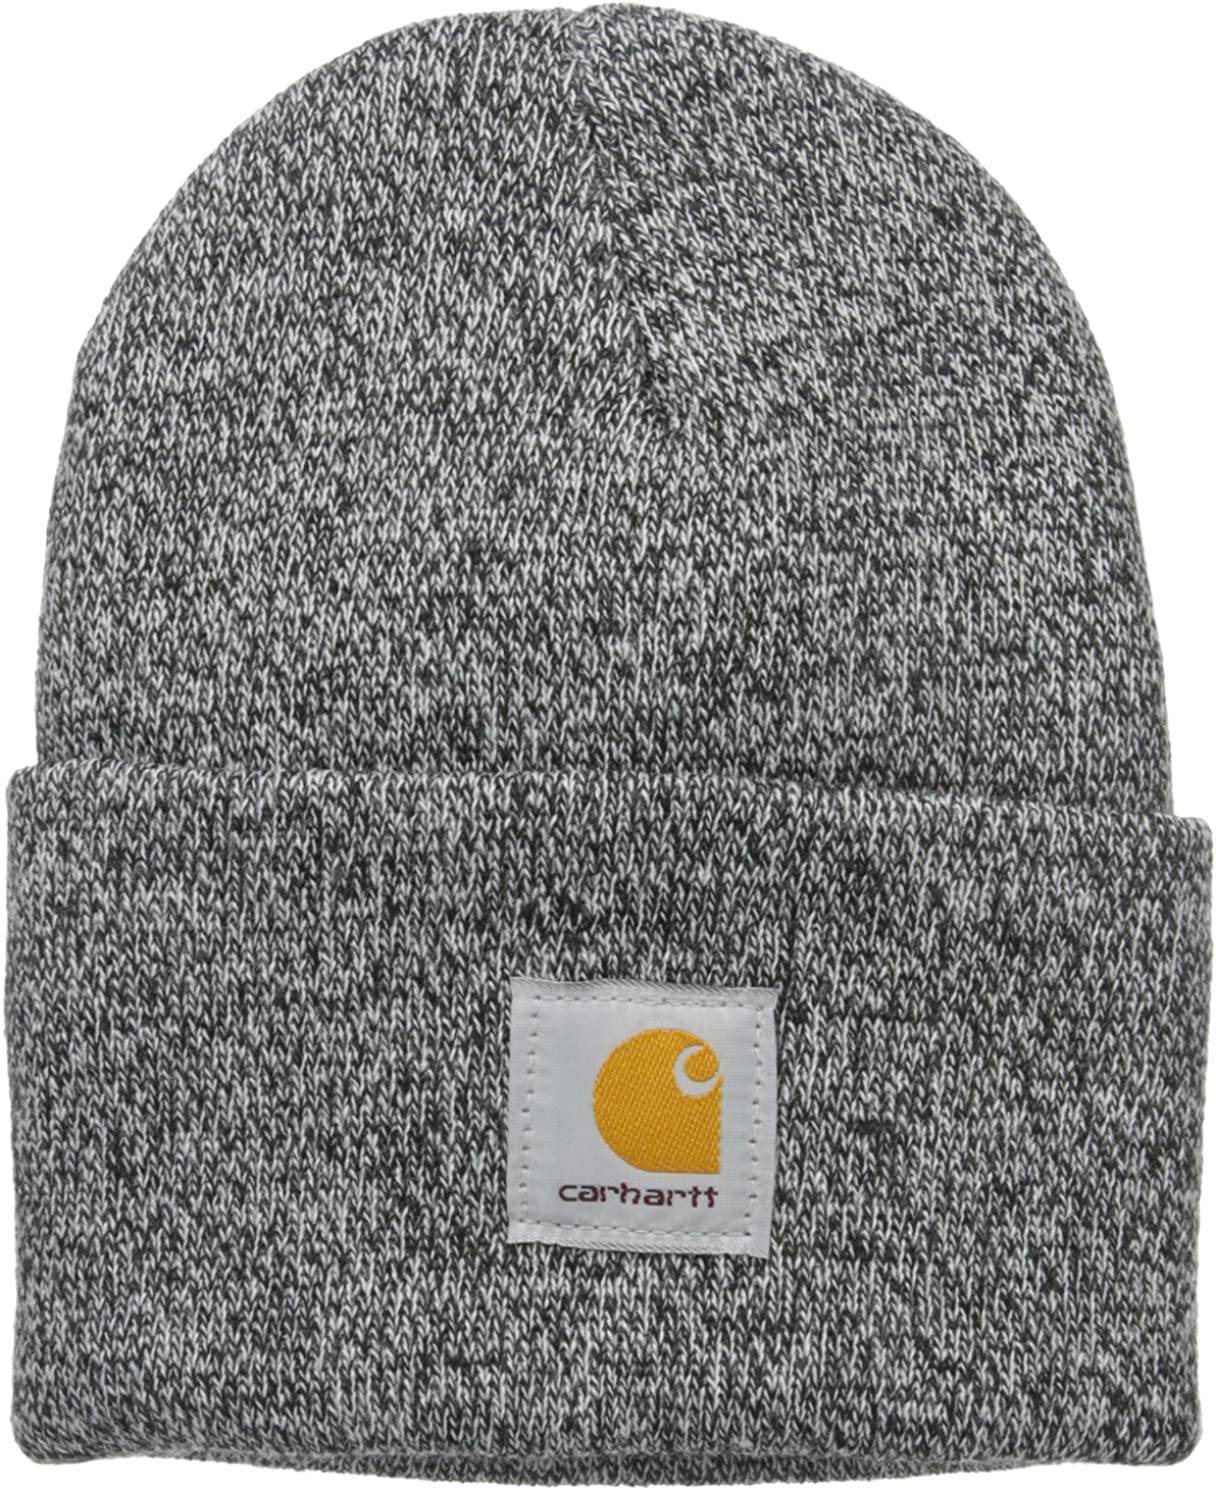 Carhartt Men's Acrylic Watch Hat A18, Black/White, One Size at  Men's Clothing store